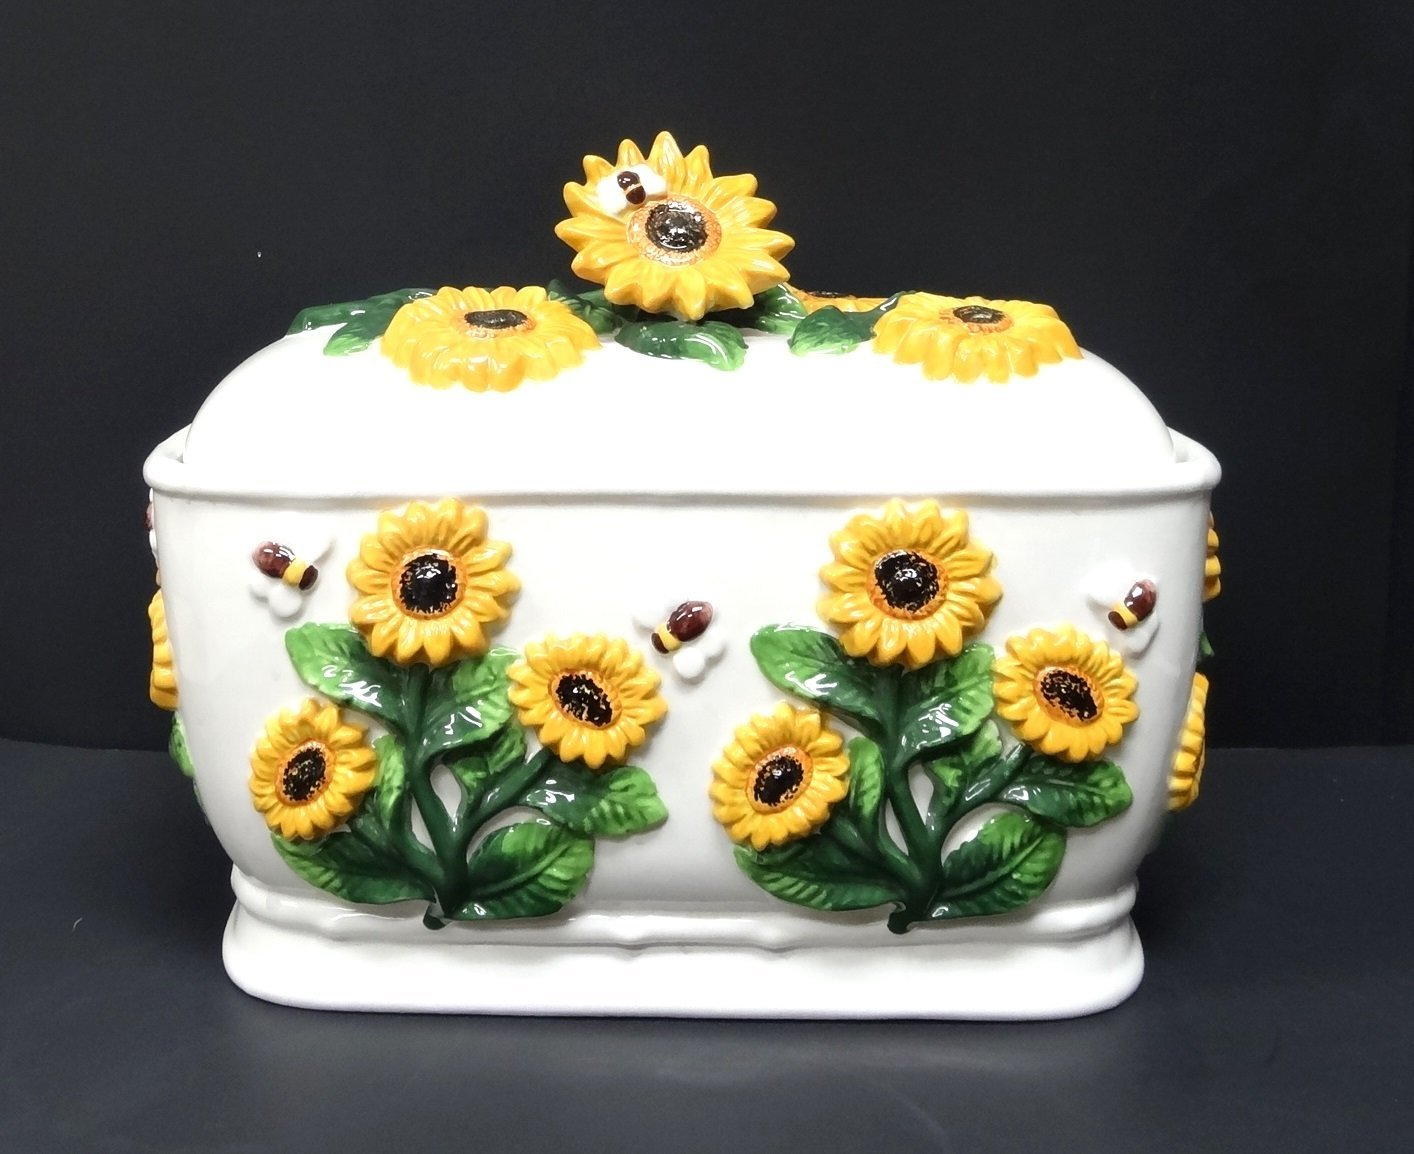 A Sunflower Ceramic Bread Box/Cookie Jar